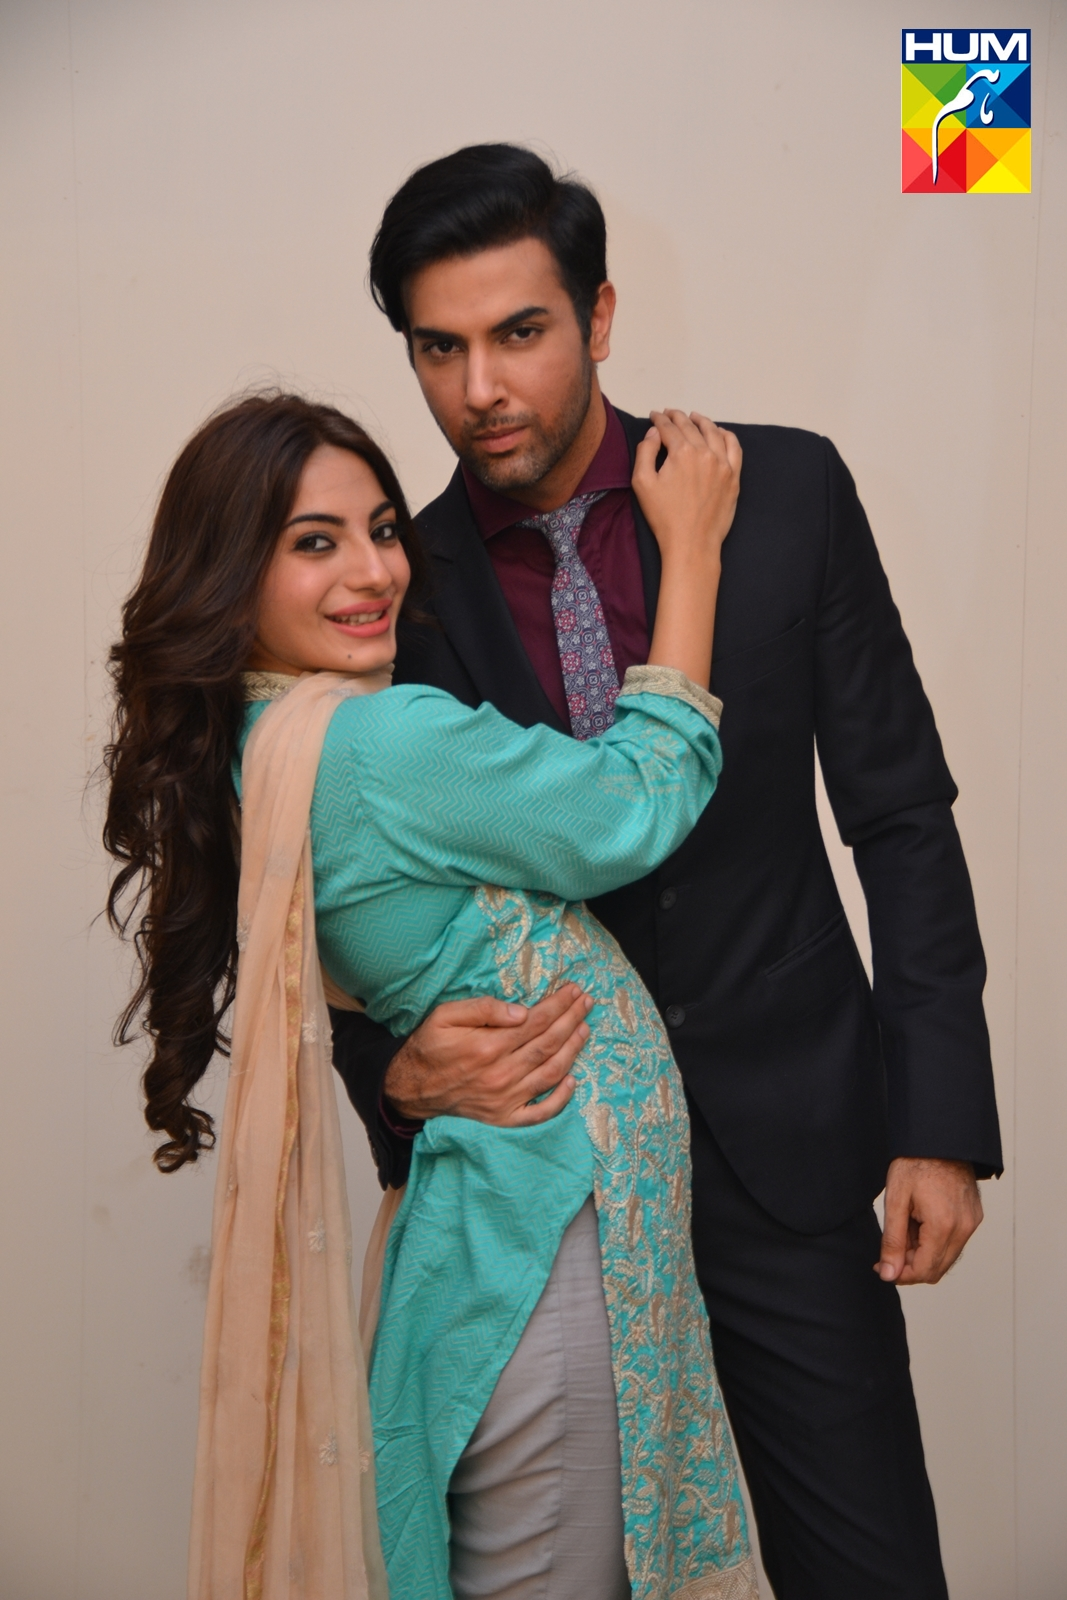 HUM TV's Drama Tere Mere Beech: OST, Timings & Pictures - Brandsynario